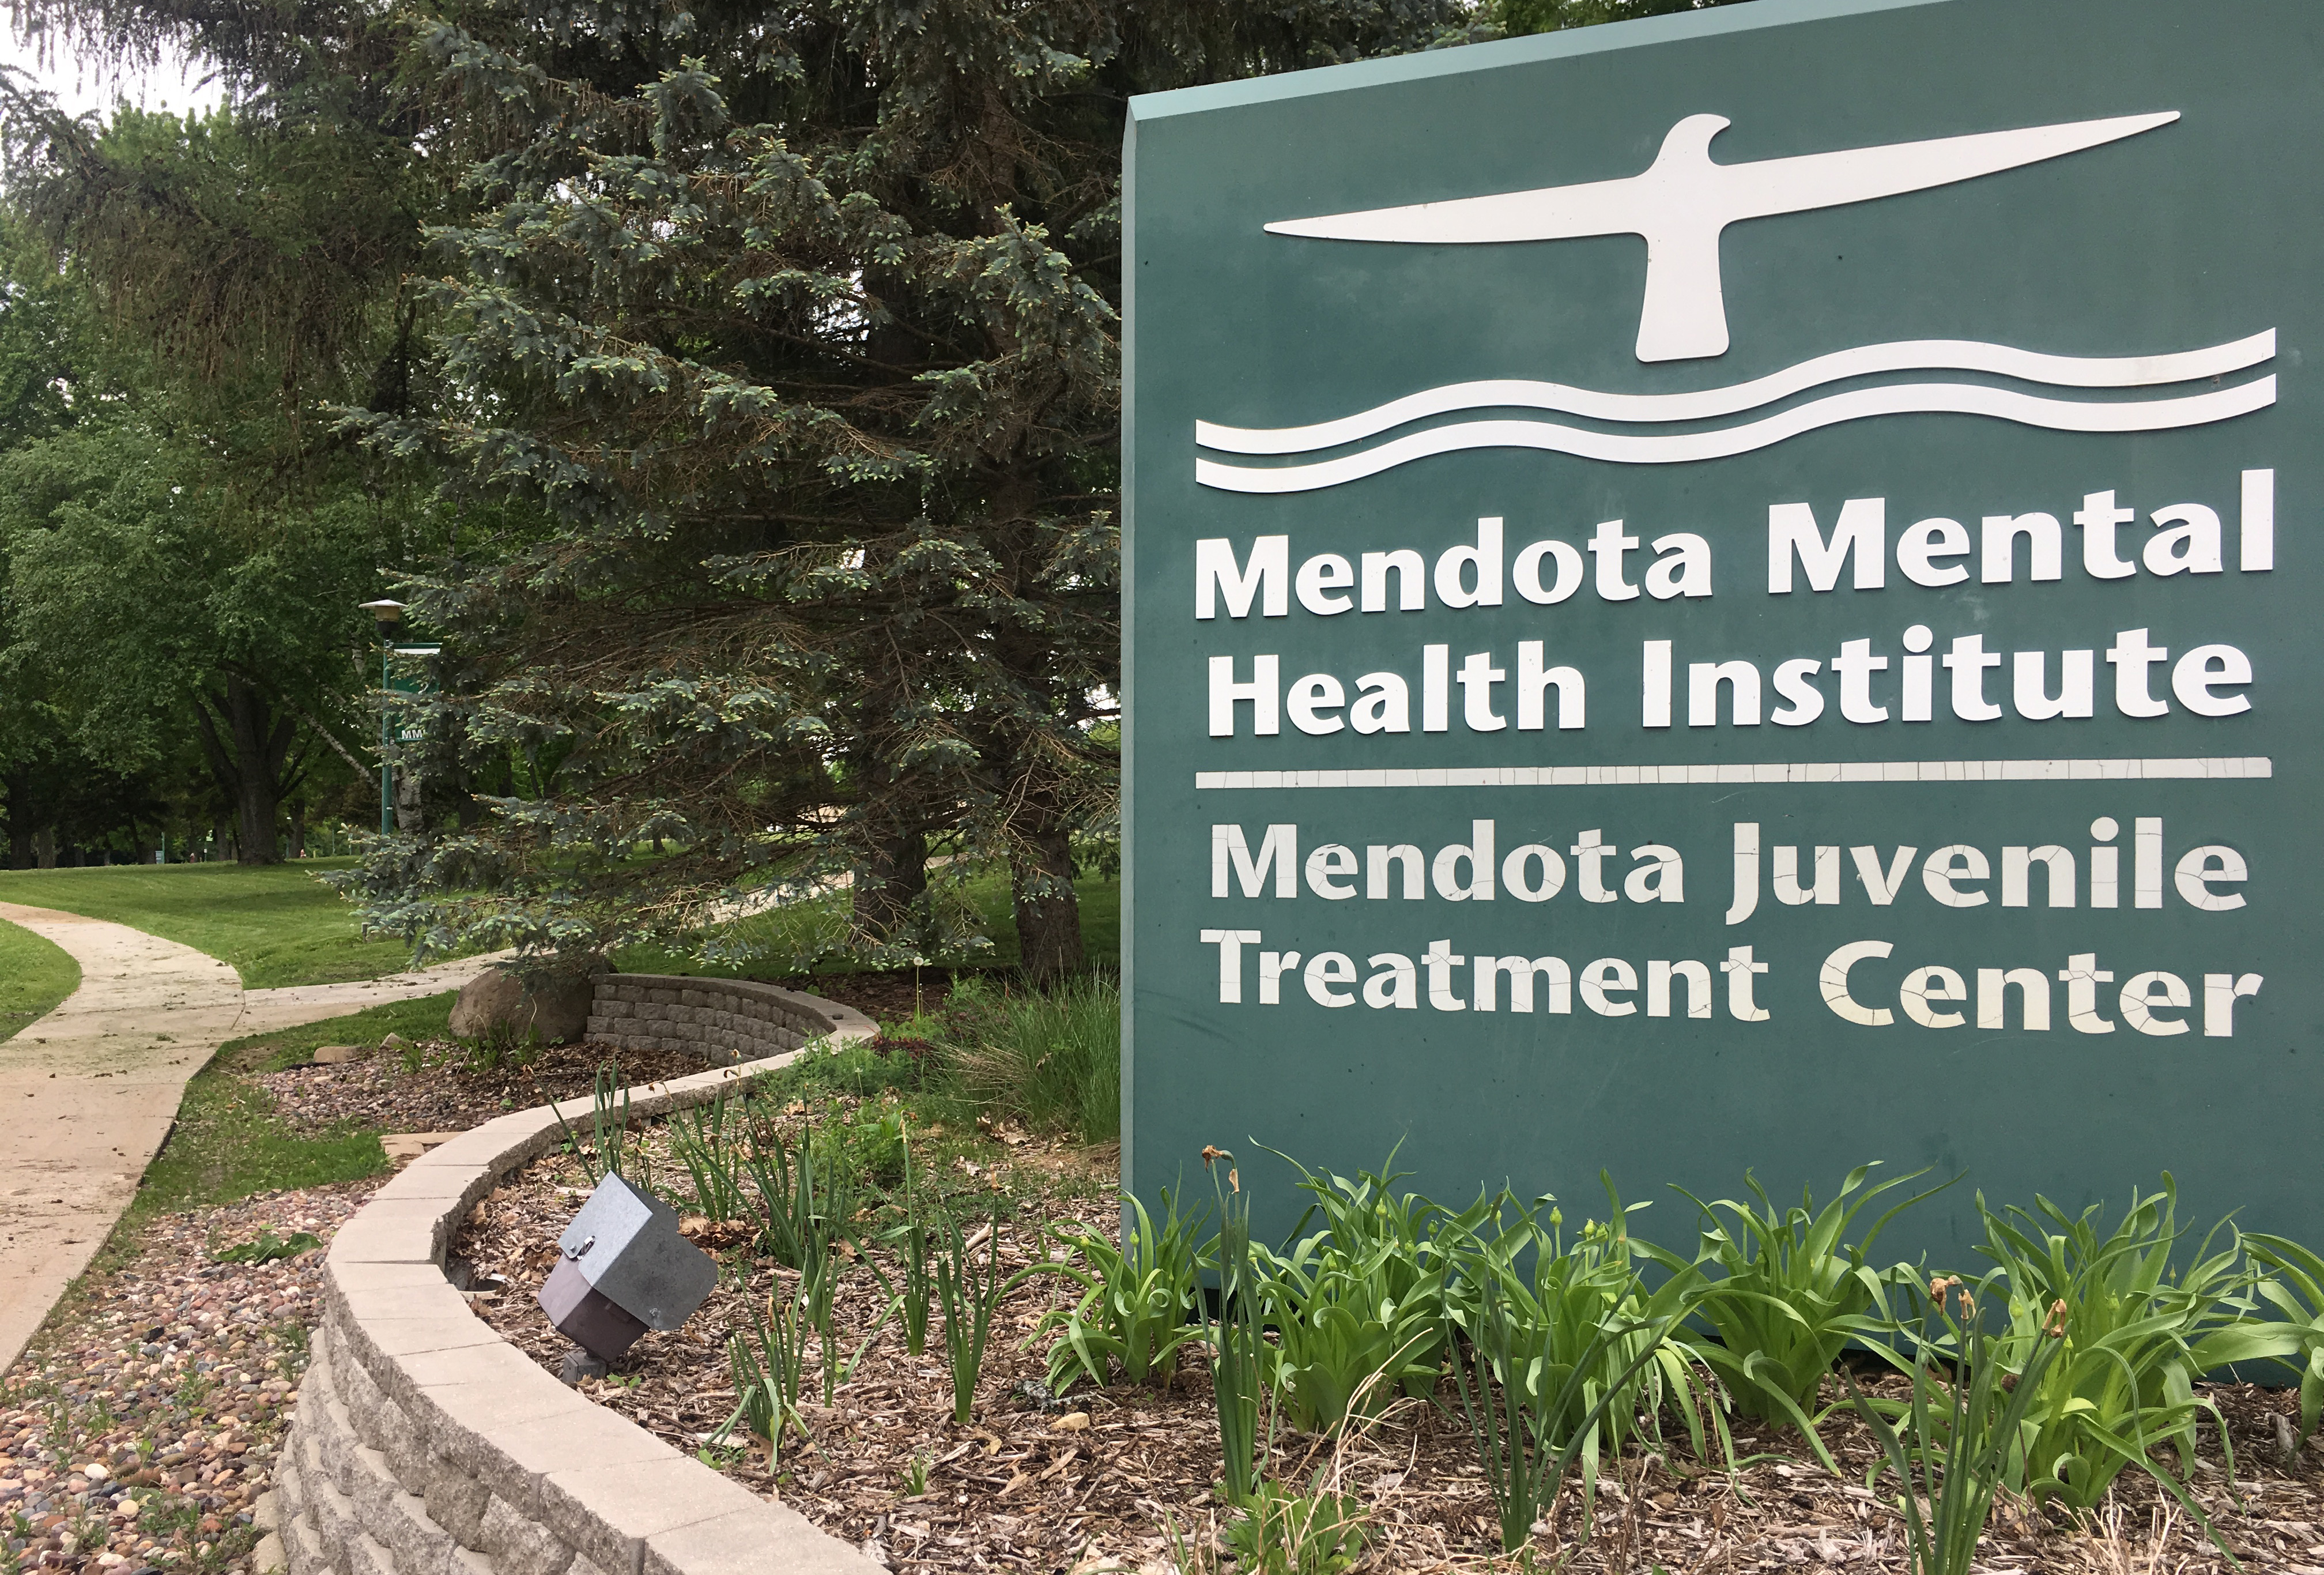 MJTC in Wisconsin has developed a programme named Decompression Treatment that has shown encouraging results in the reduction of violent and criminal tendencies in youths who display psychopathic traits and have participated in the program for one year or more.